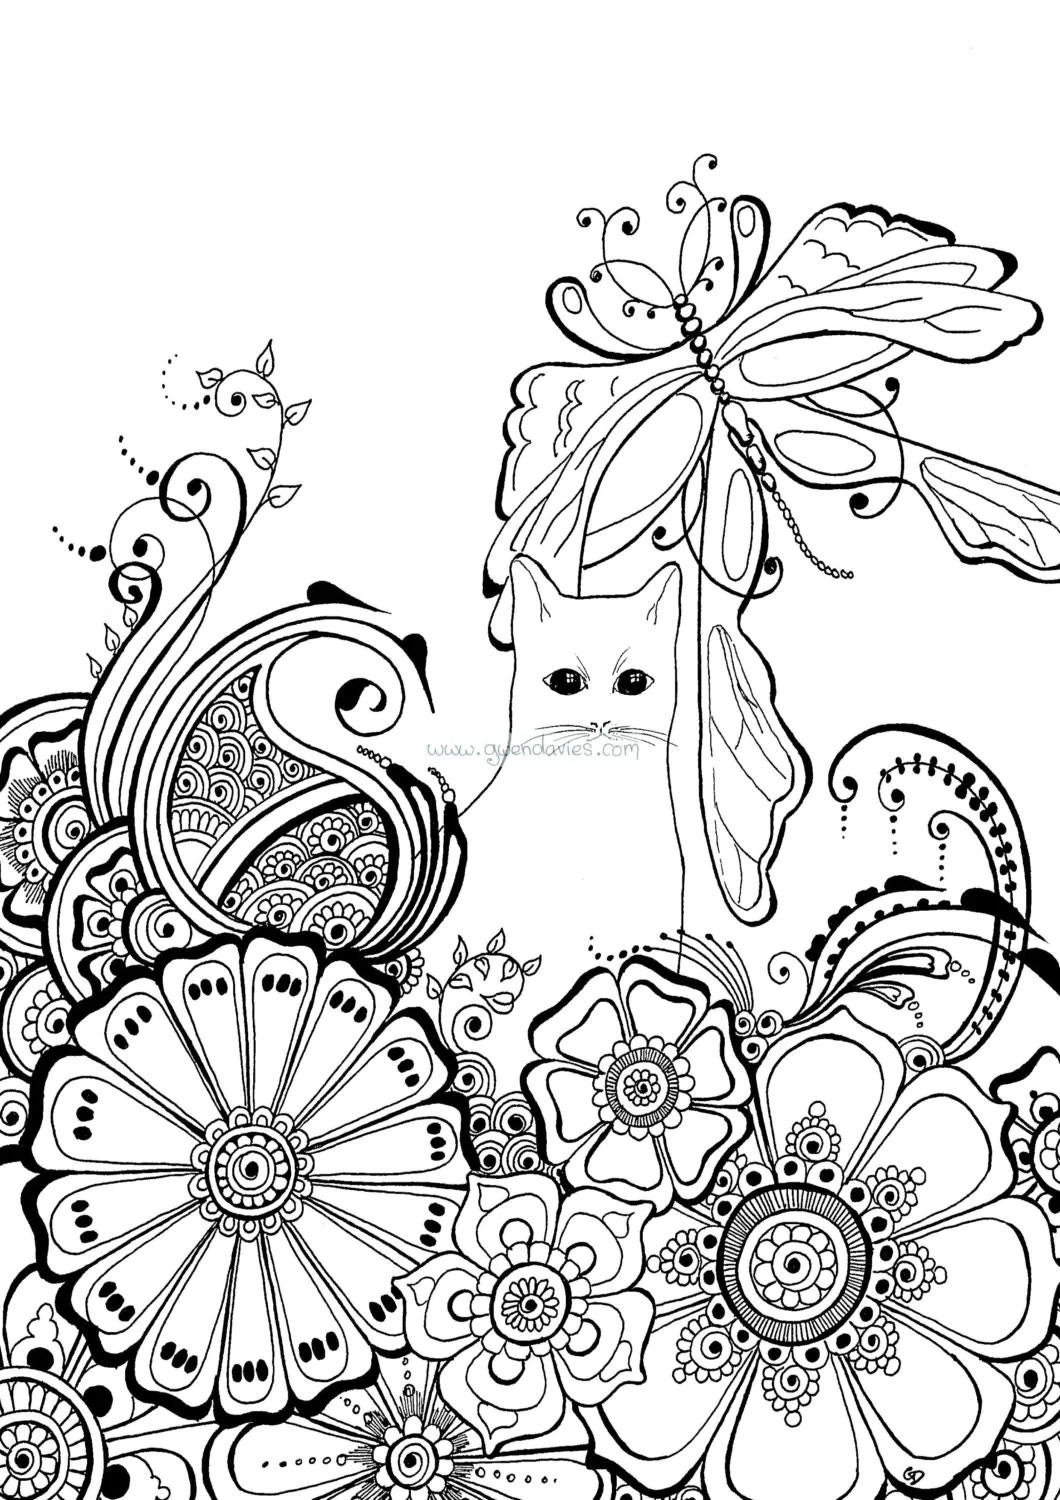 Colour the cat (2) with henna flowers and dragonfly